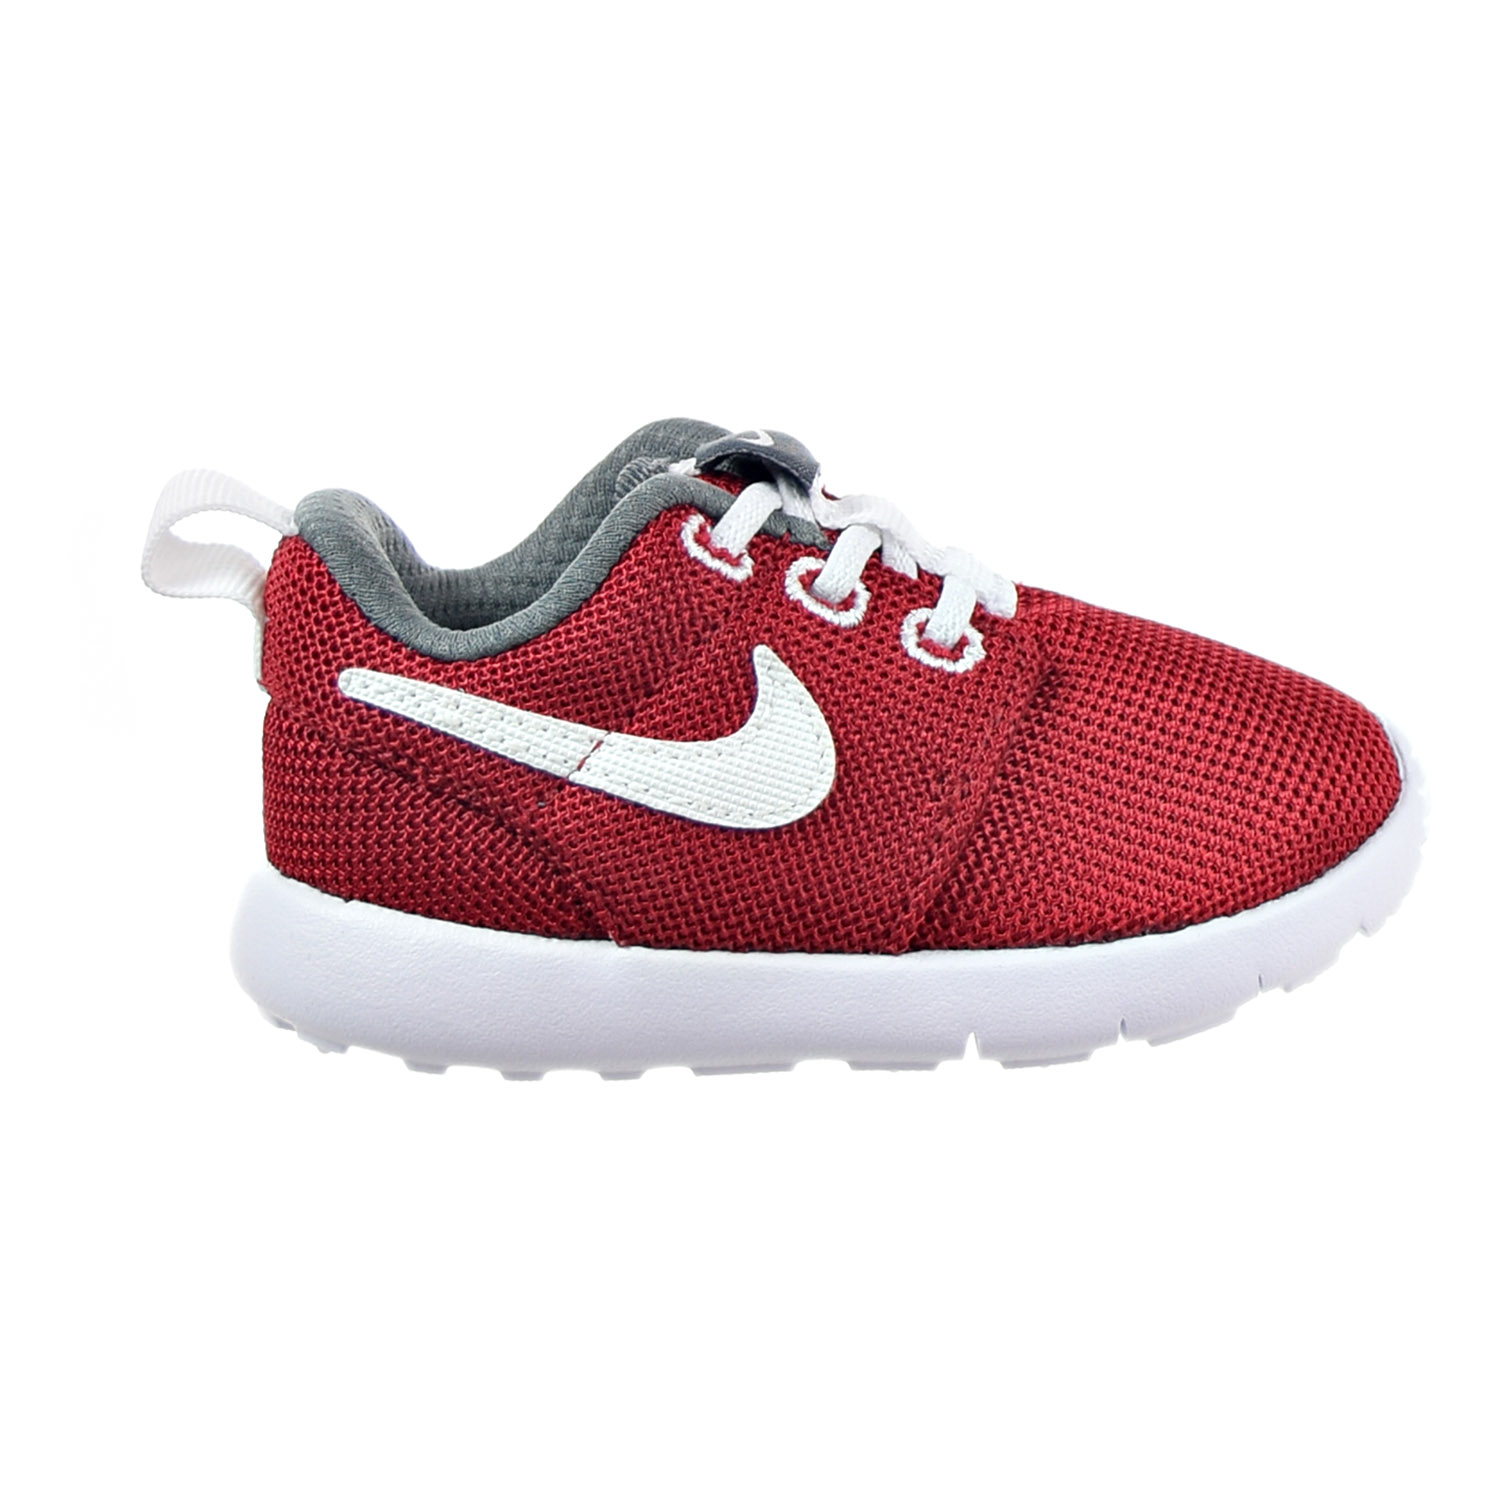 db8a0effb31b ... clearance nike roshe one infant toddlers shoes gym red dark grey white  749430 d4d85 33d35